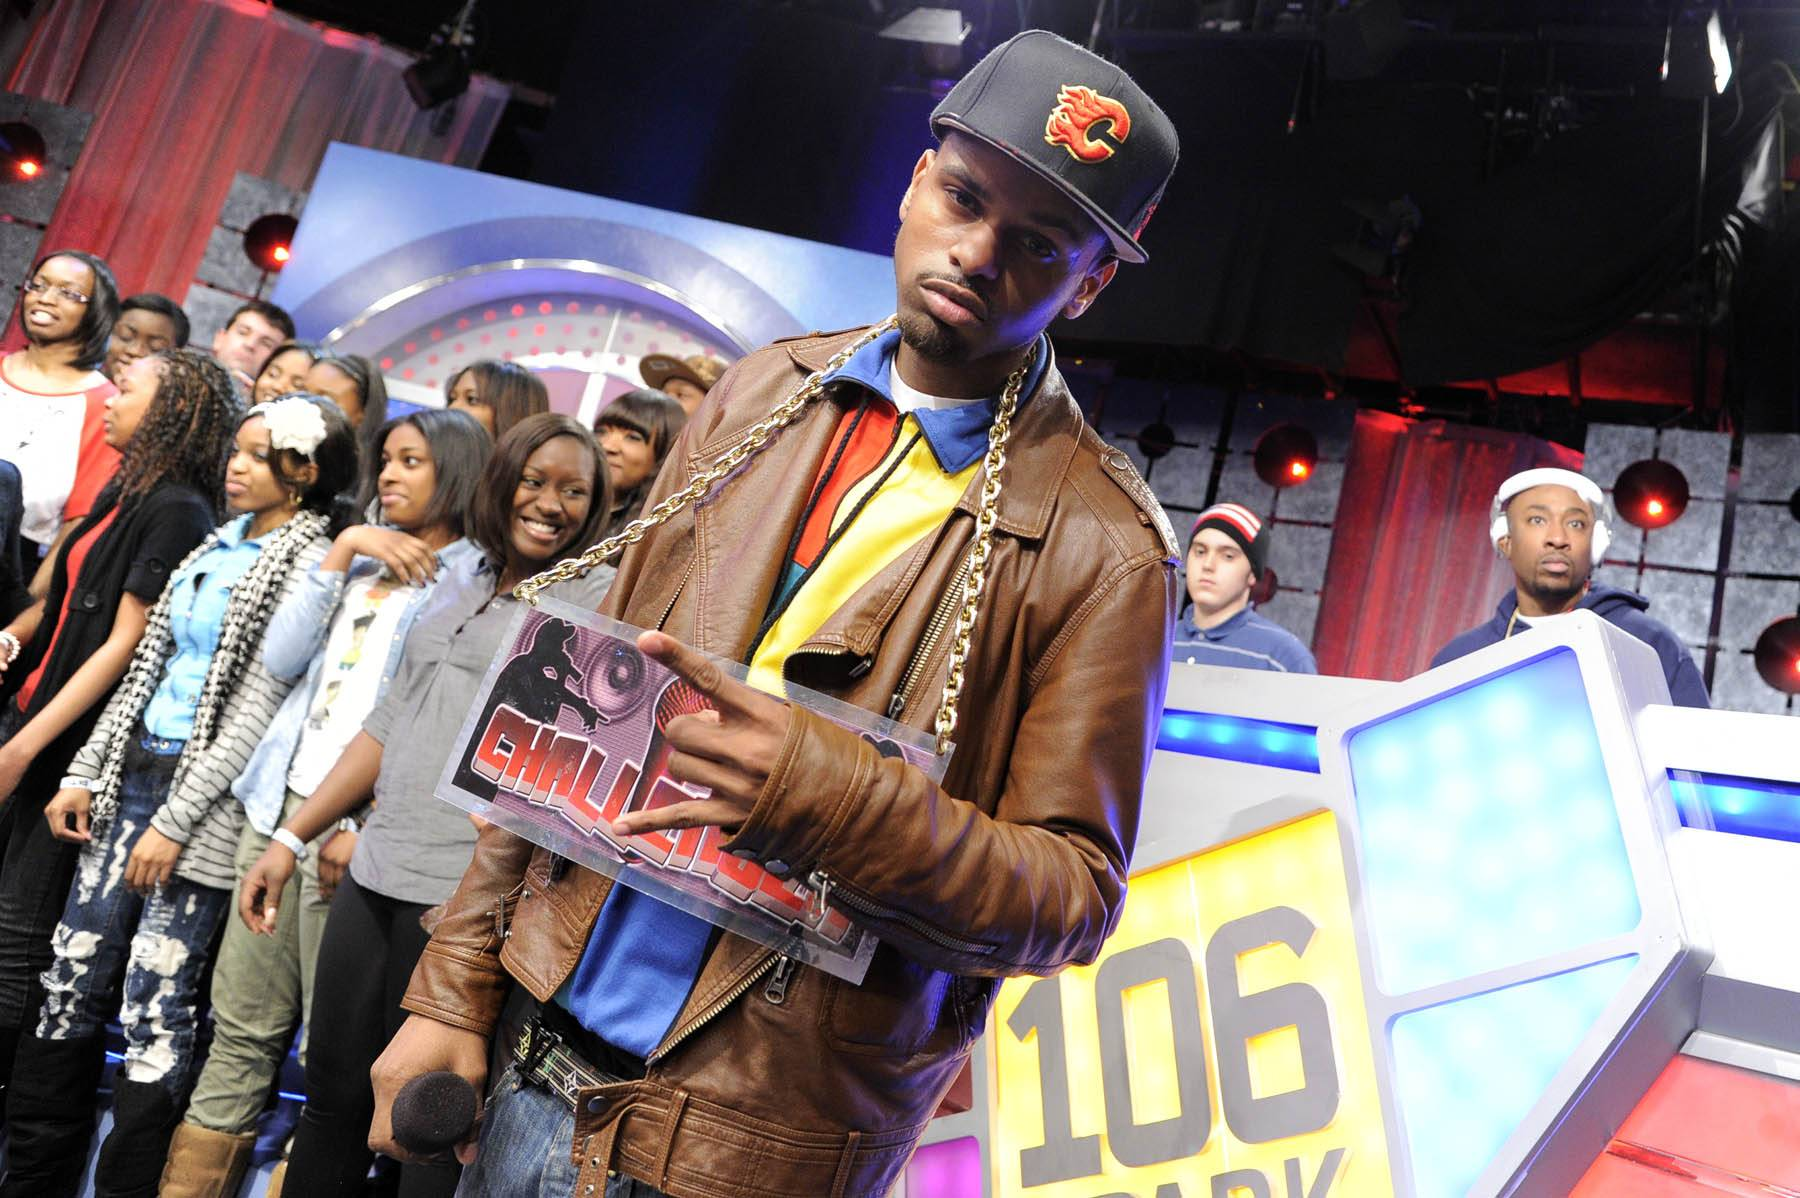 It's Rio, Homie - Freestyle Friday challenger J. Dose, who hails from Philadelphia, PA, at 106 & Park, January 27, 2012. (Photo: John Ricard / BET)